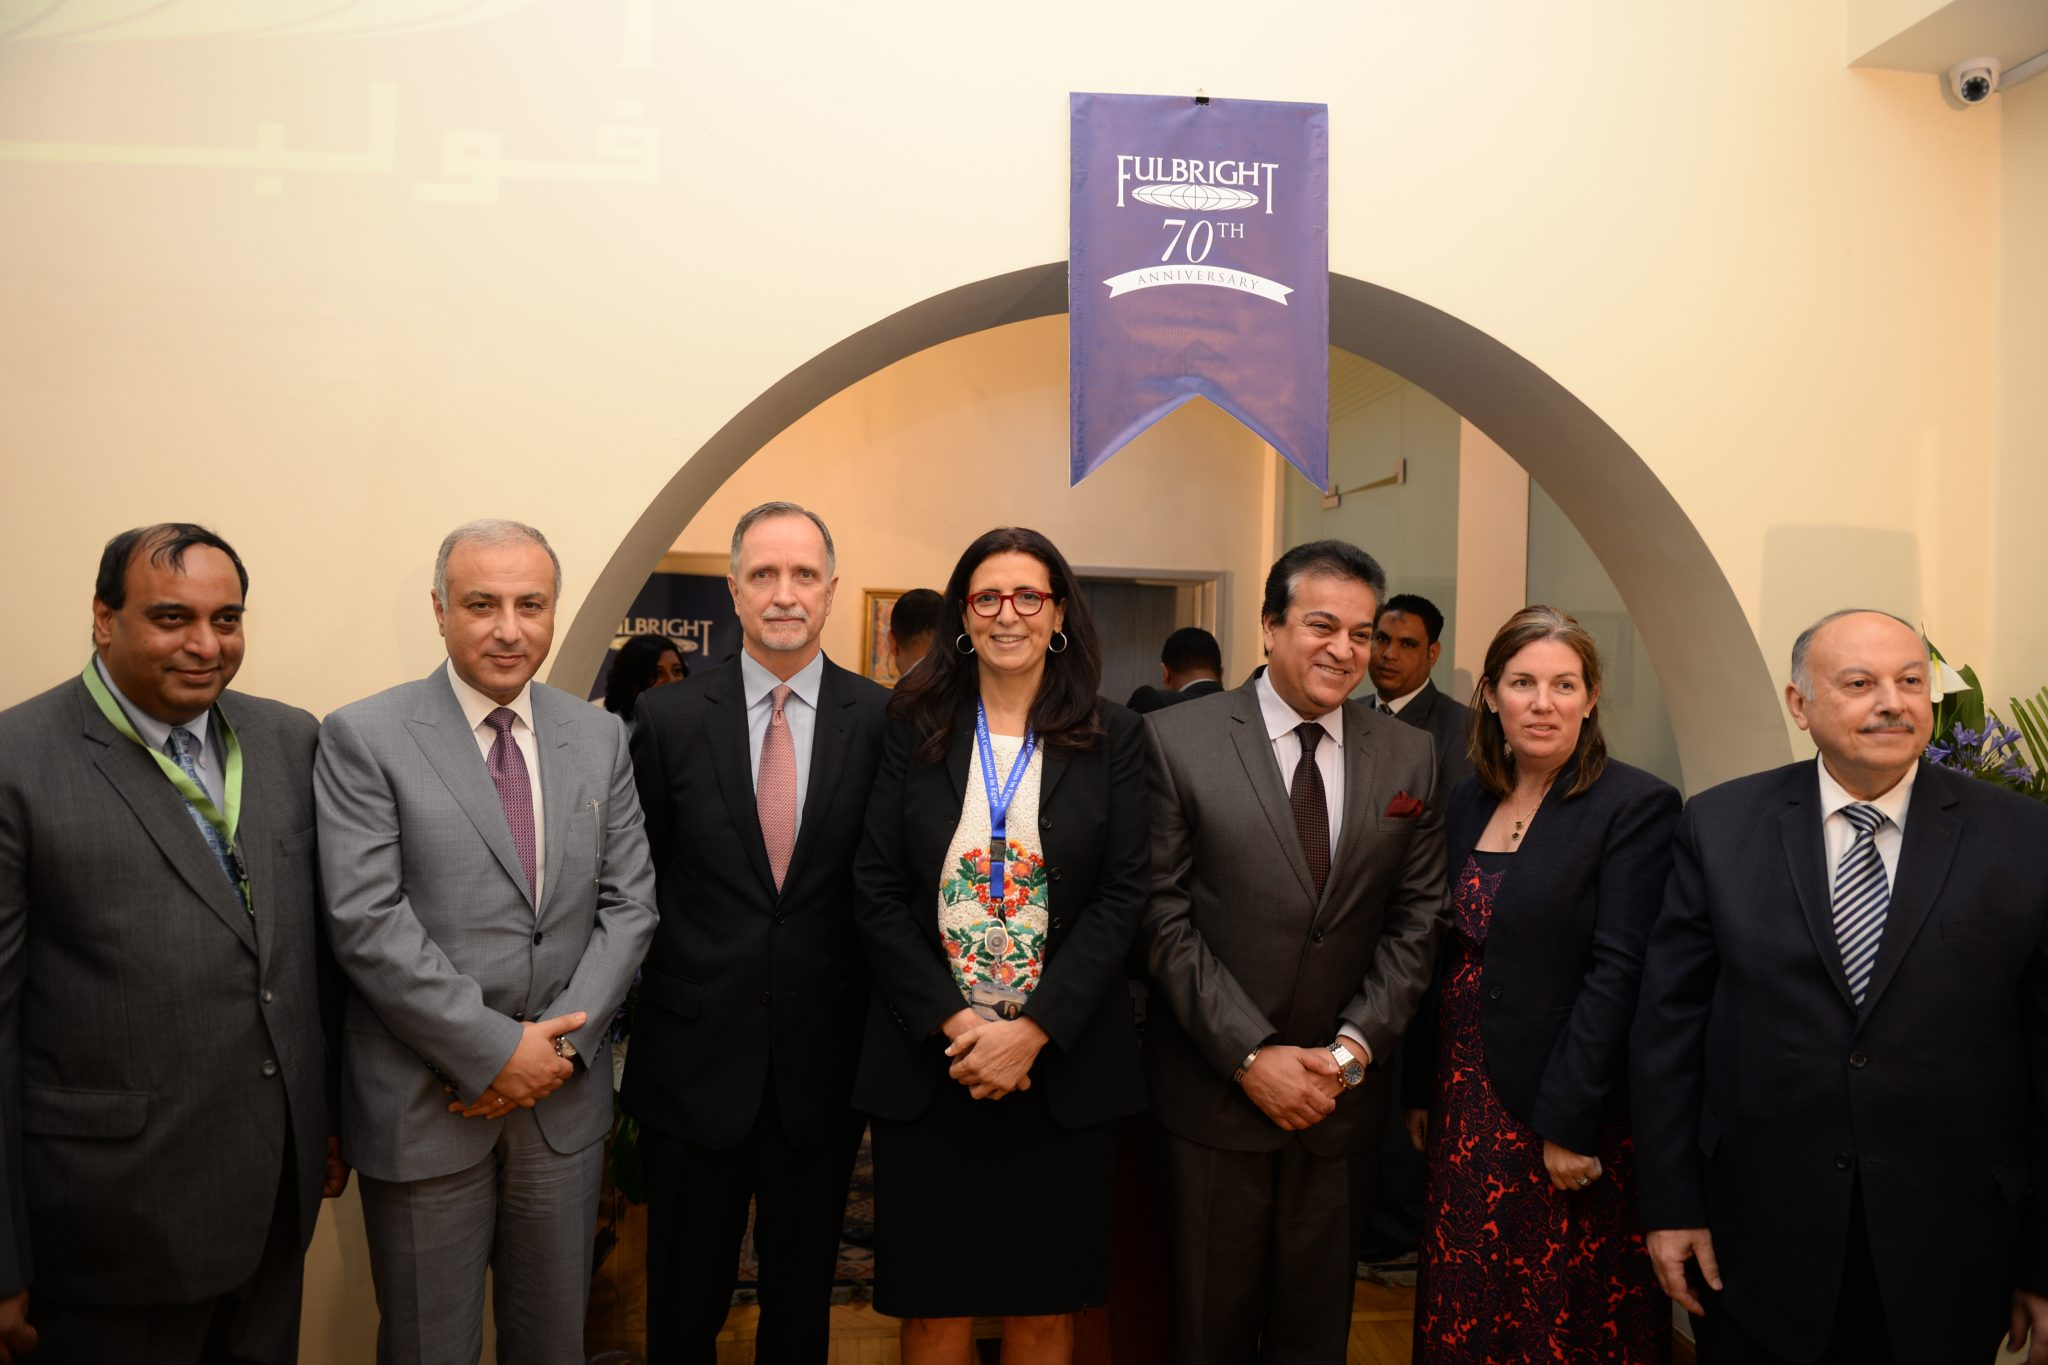 U.S. AND EGYPT CELEBRATE 70TH ANNIVERSARY OF FULBRIGHT PROGRAM (May 21, 2017)